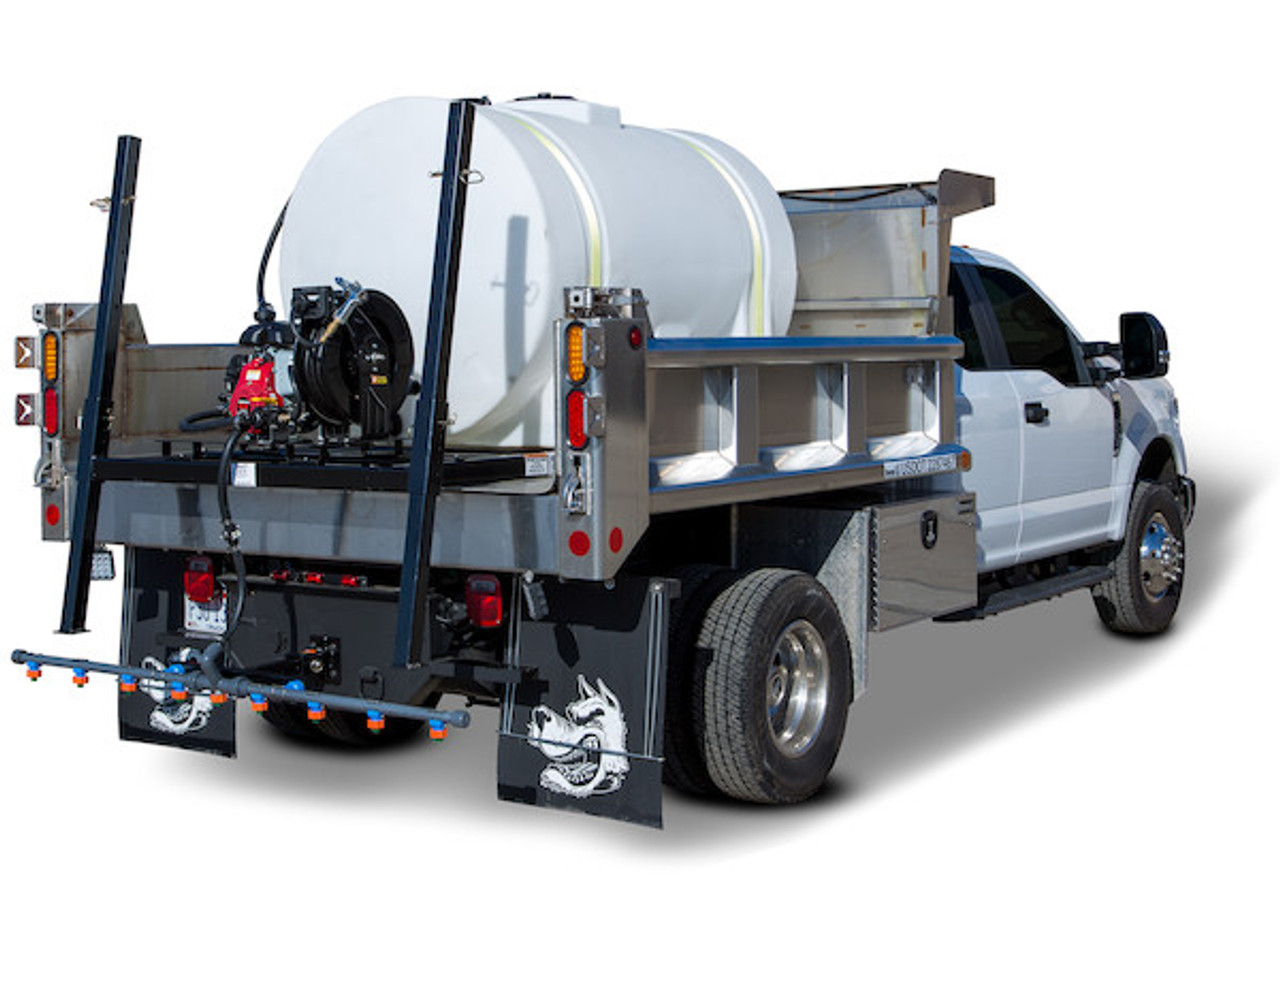 6191120 BUYERS SALTDOGG 550 GALLON GAS-POWERED ANTI-ICE SYSTEM WITH MANUAL APPLICATION RATE CONTROL